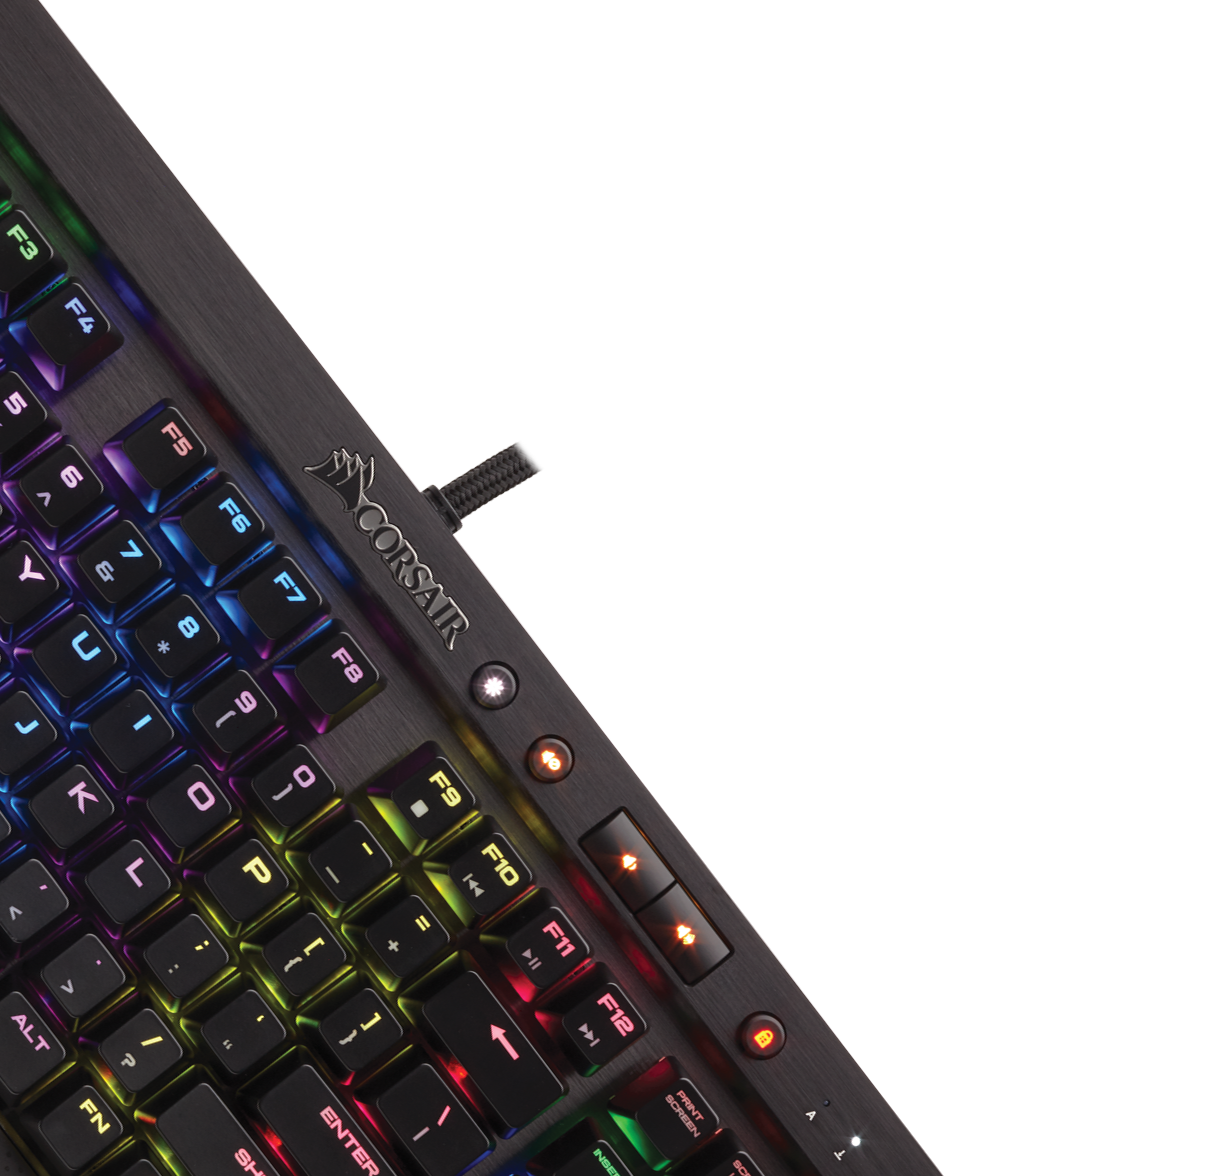 K65 LUX RGB Compact Mechanical Gaming Keyboard — CHERRY® MX